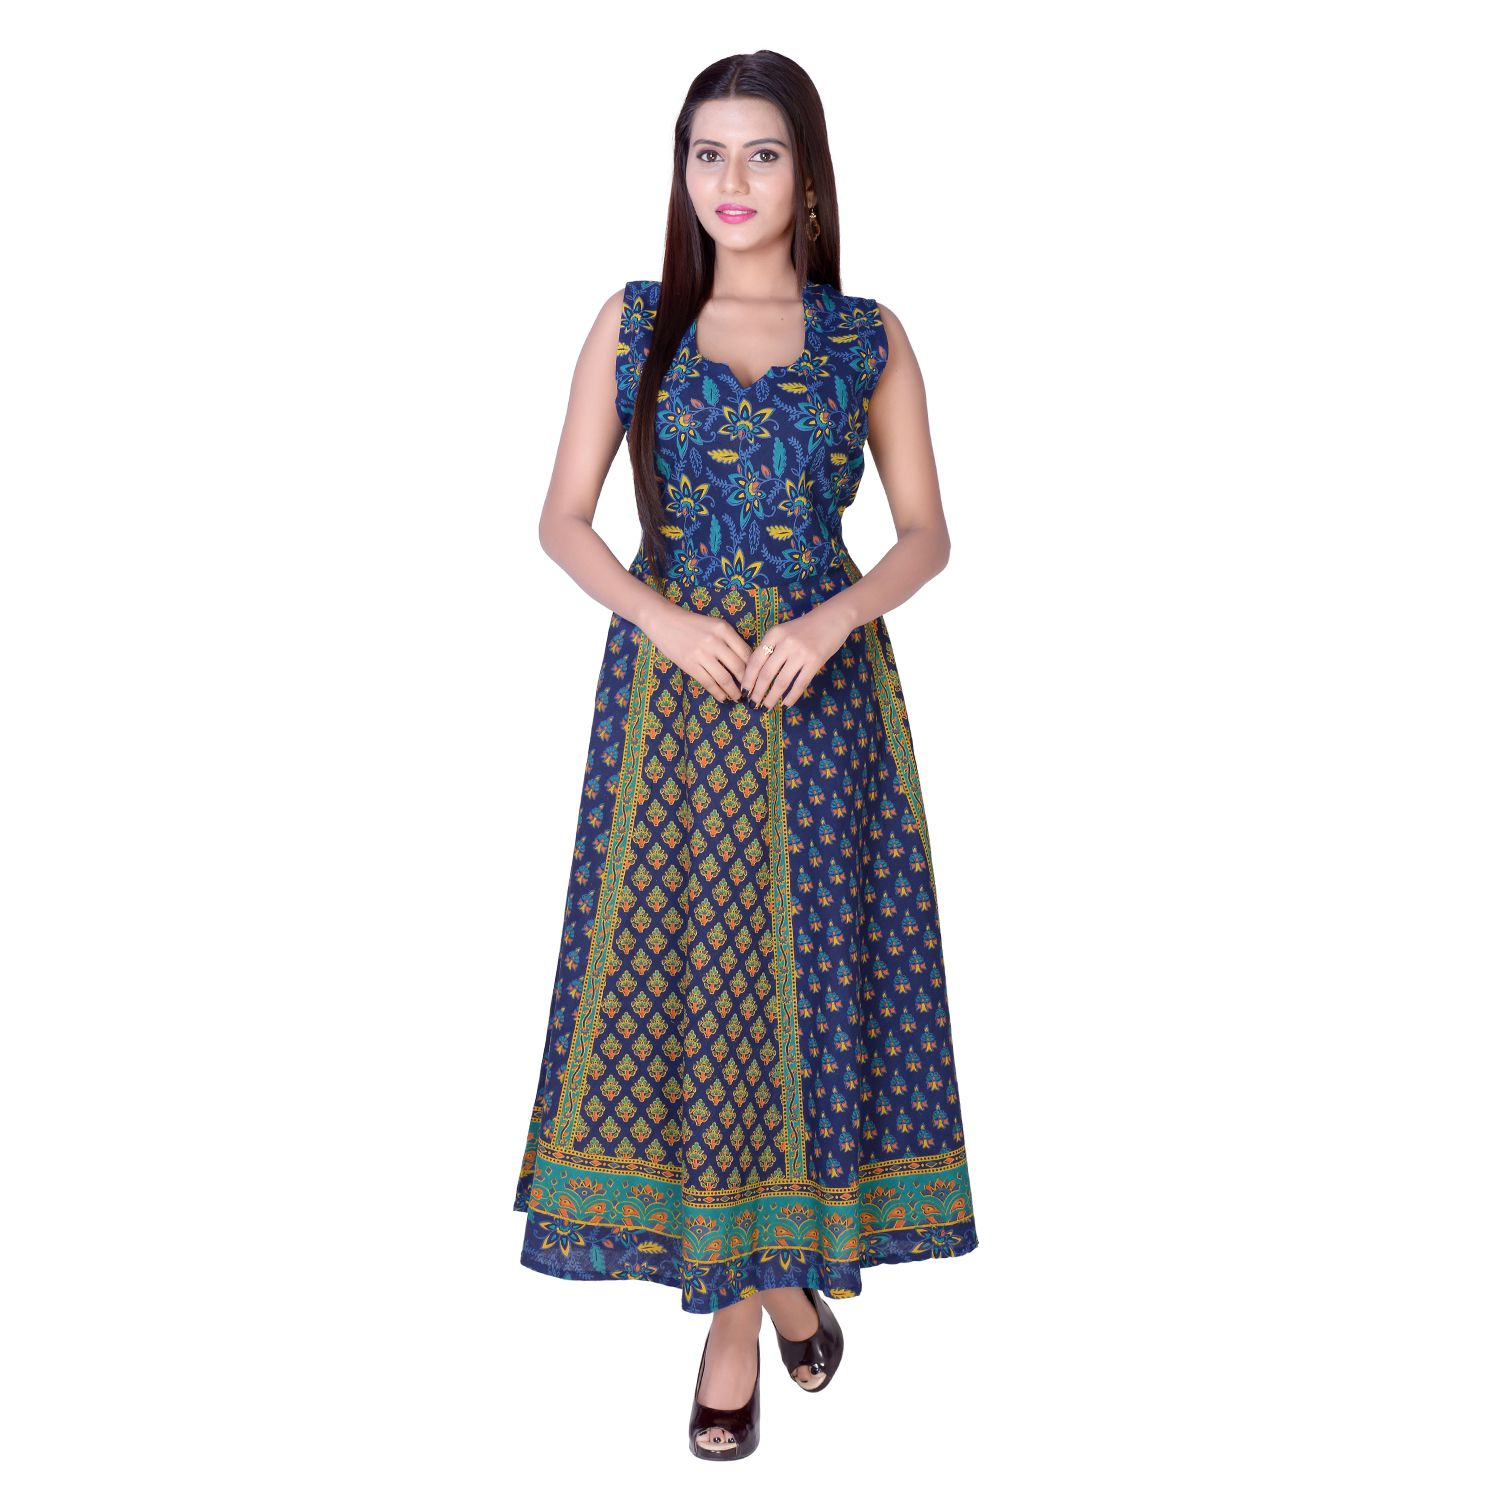 683570d71 Western Dresses Online India Snapdeal